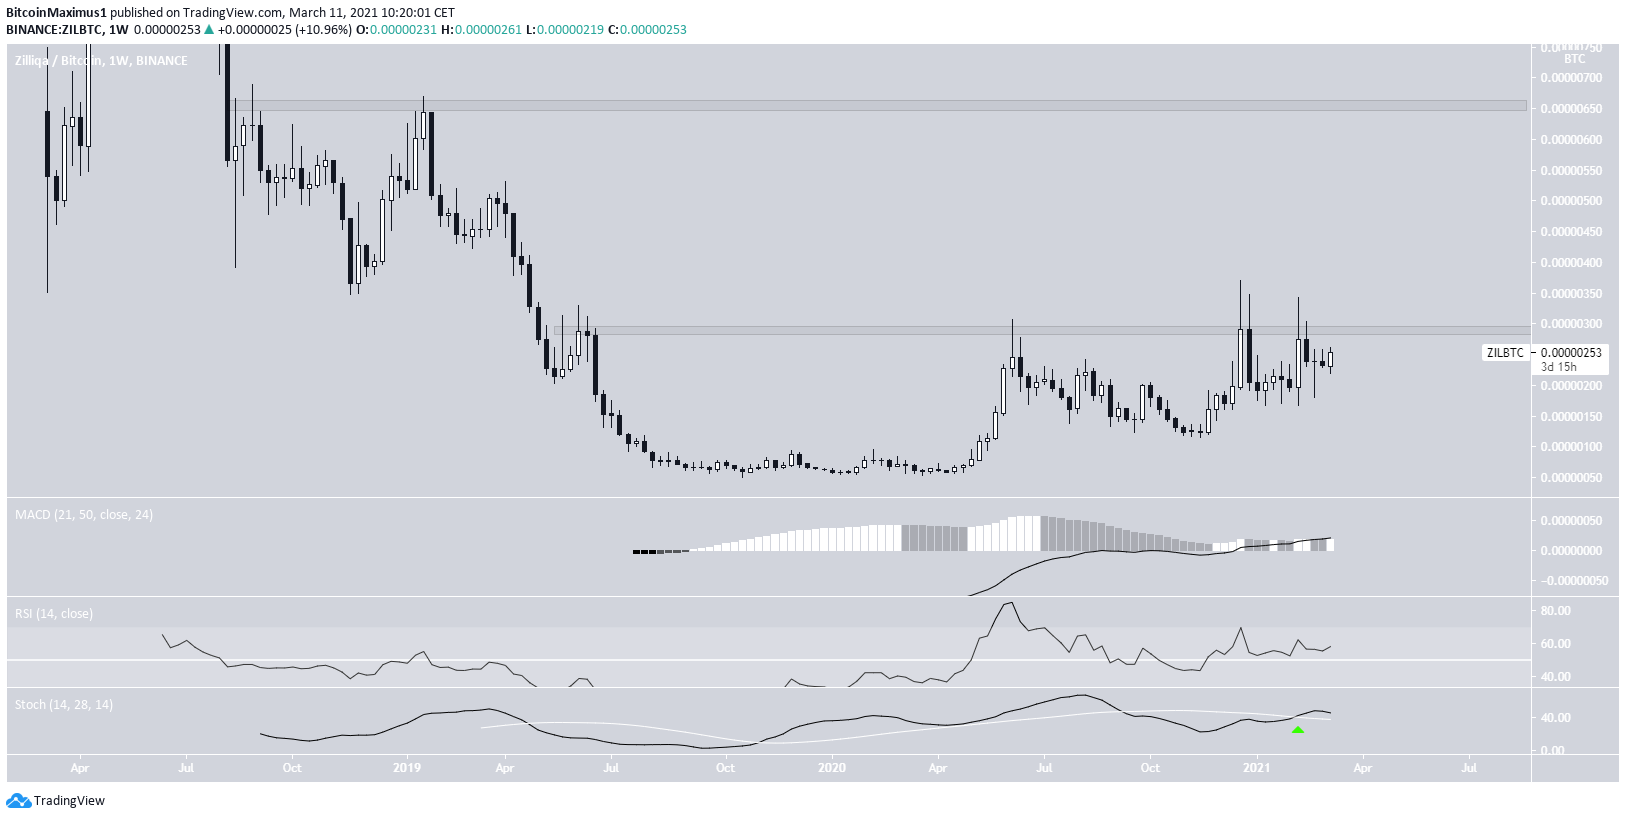 ZIL/BTC Movement